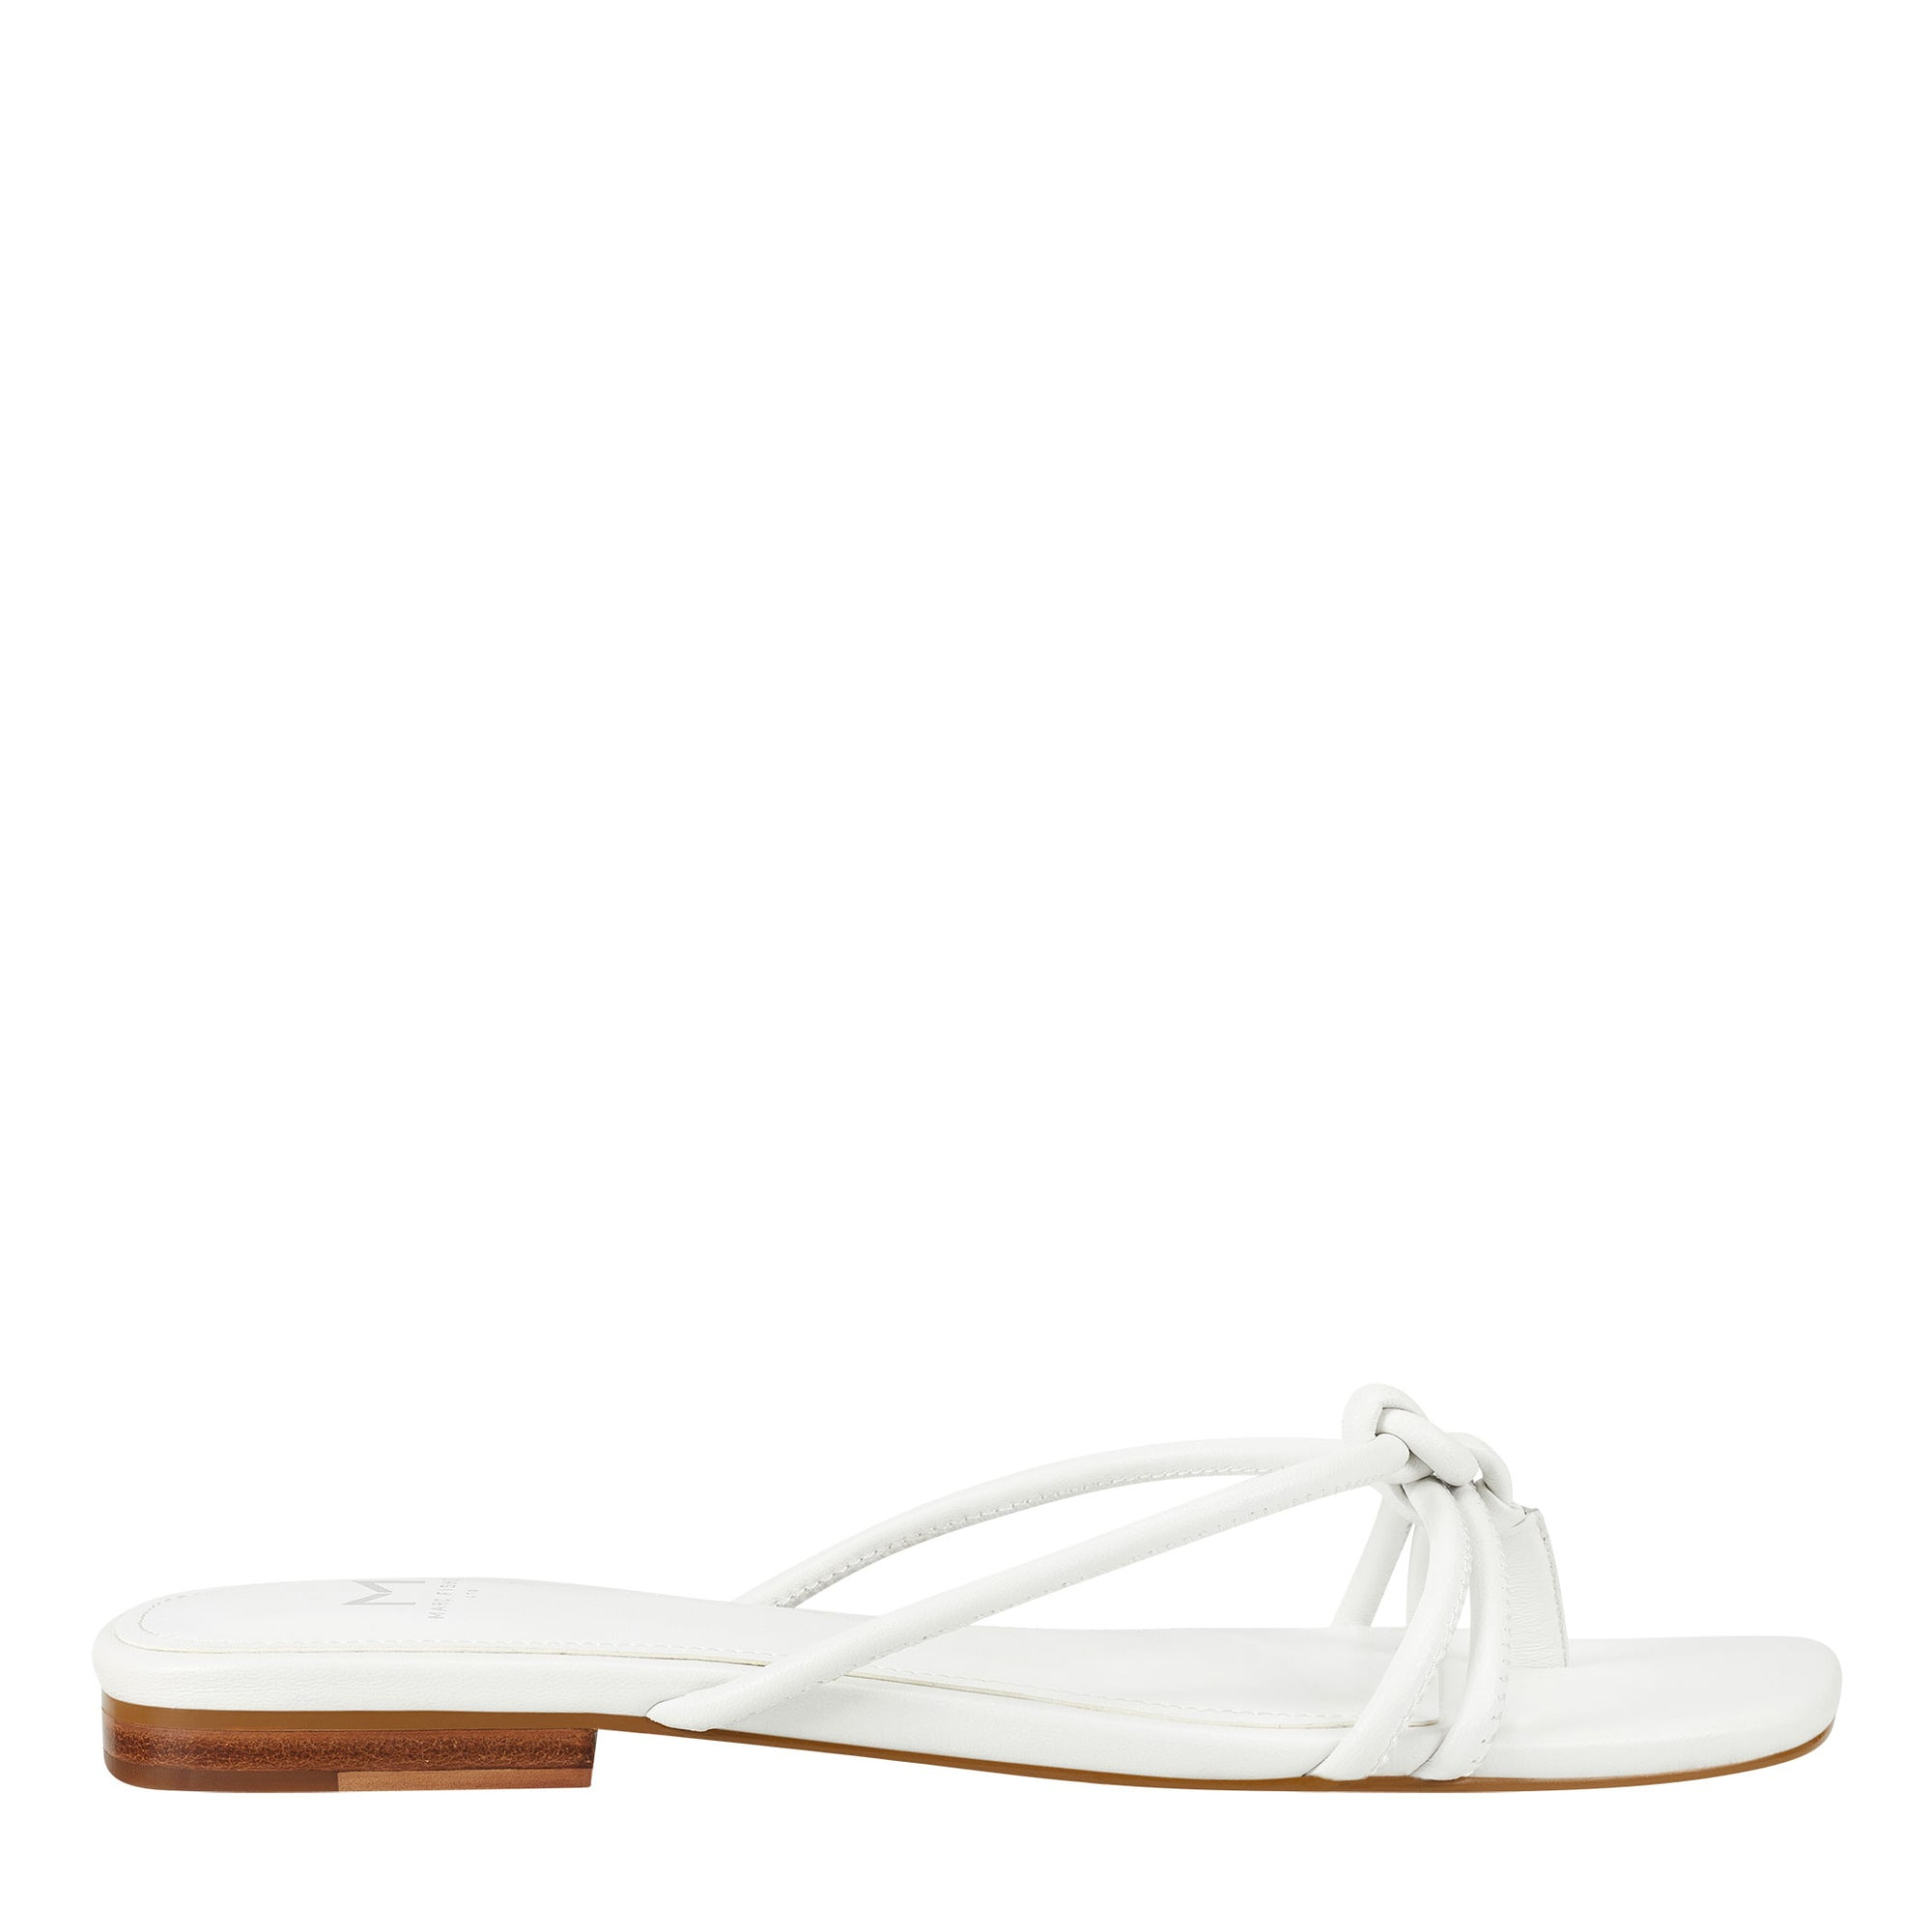 monty-flat-slide-in-white-leather